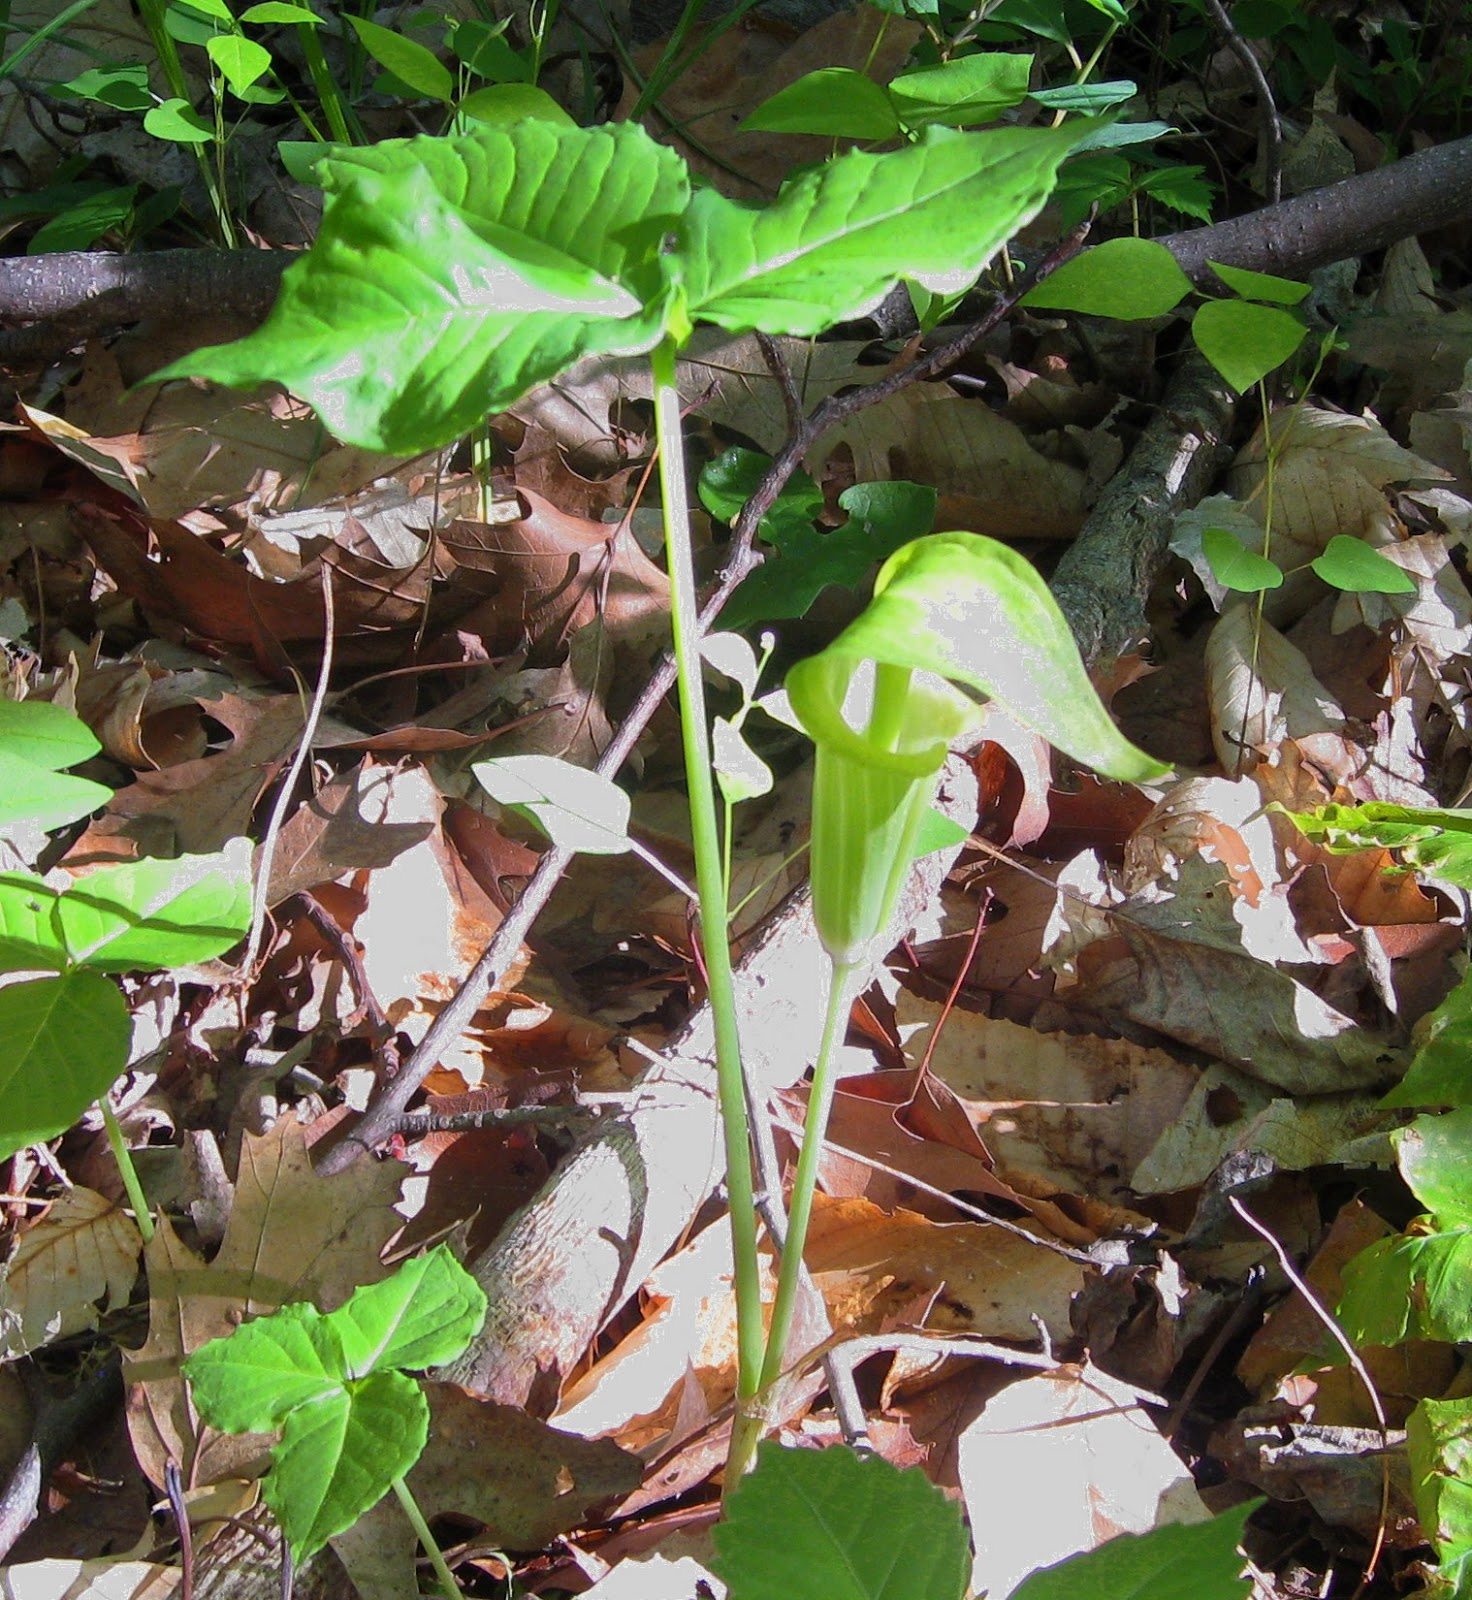 Image of jack-in-the-pulpit by K. R. Smith - may be used with attribution